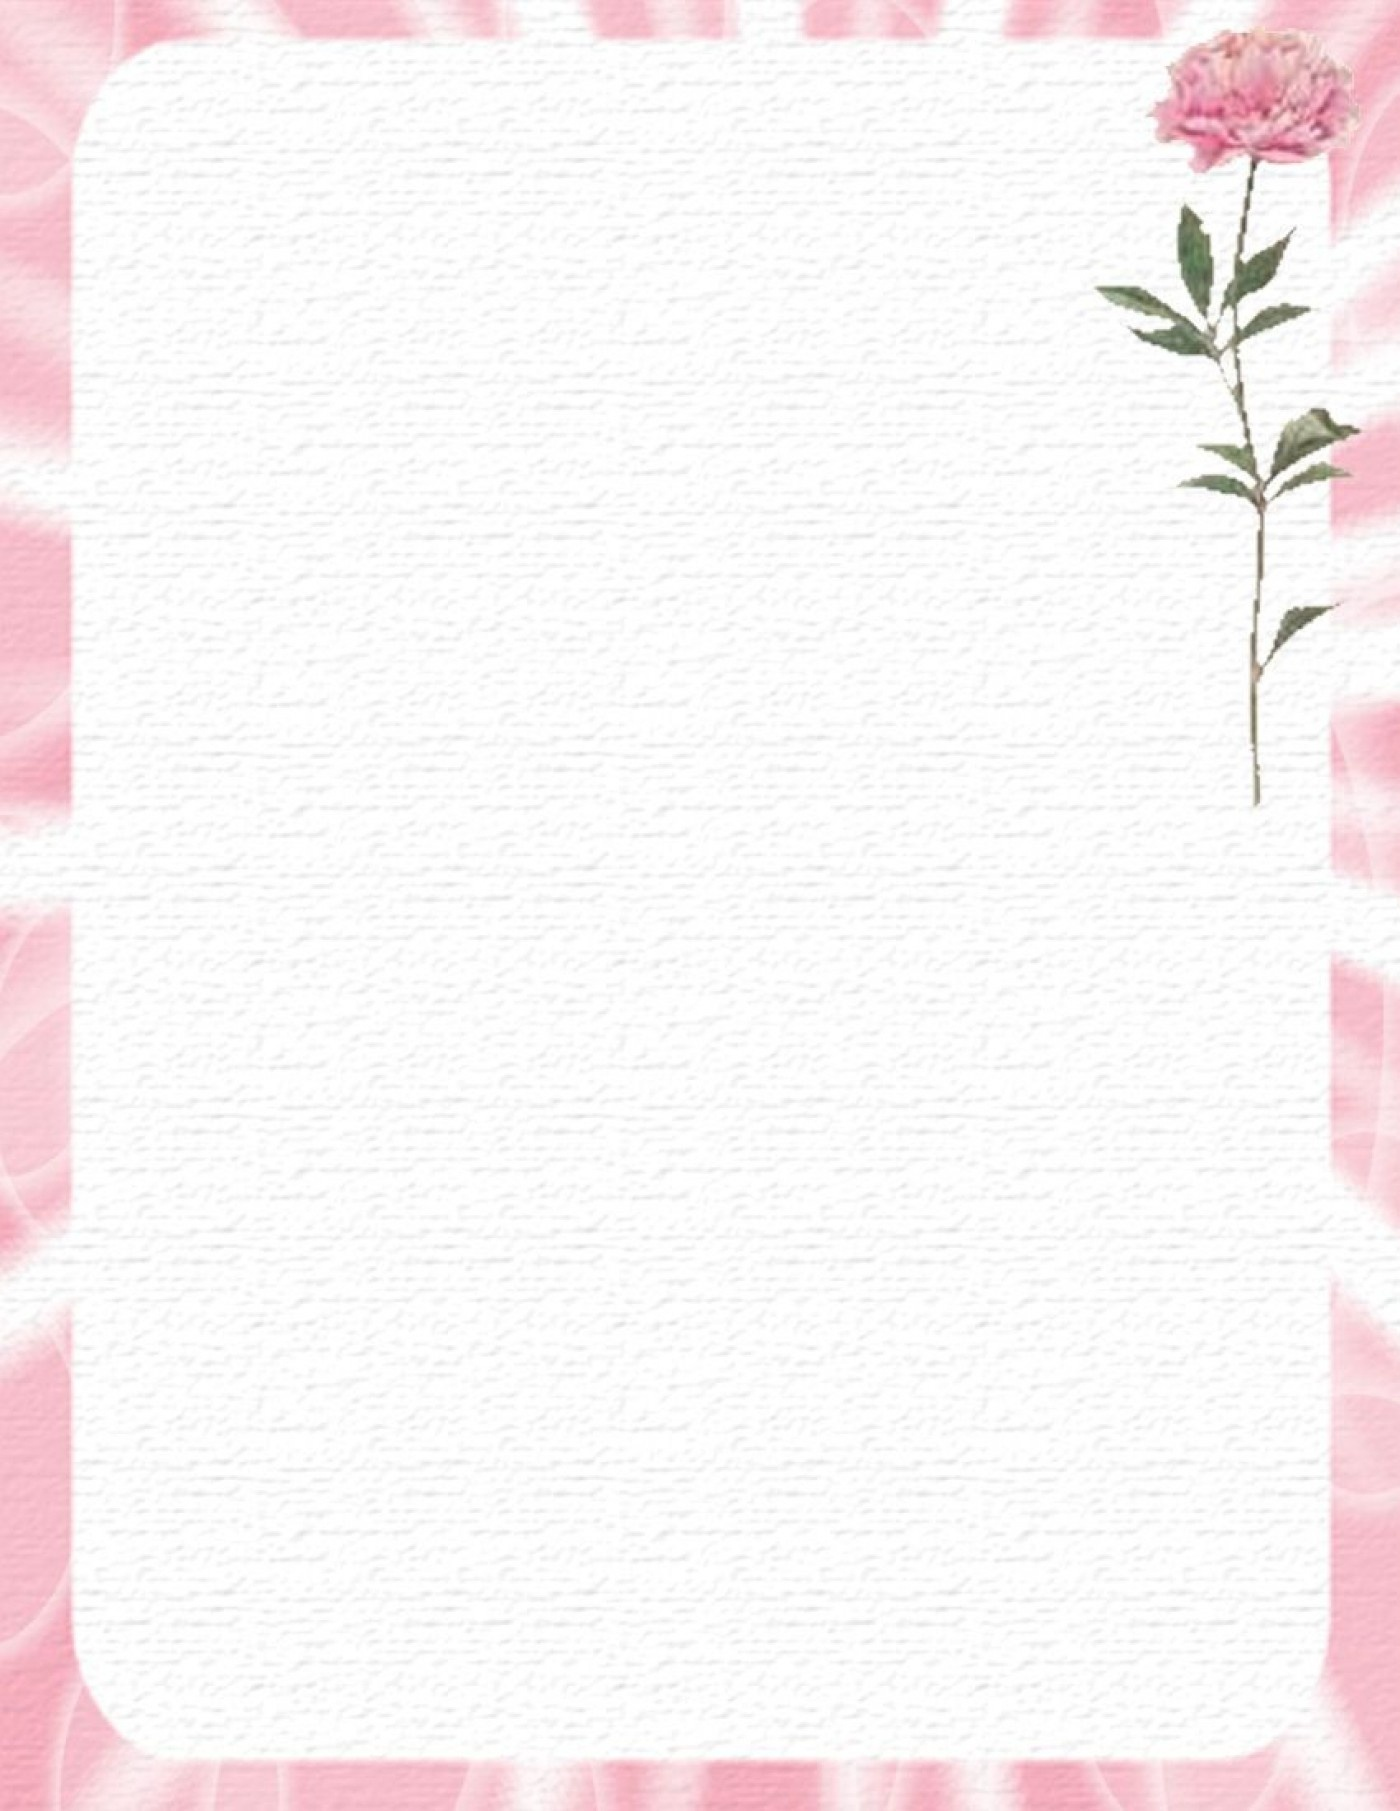 015 Template Ideas Crisb2 Free Printable Elegant Stationery Stirring - Free Printable Elegant Stationery